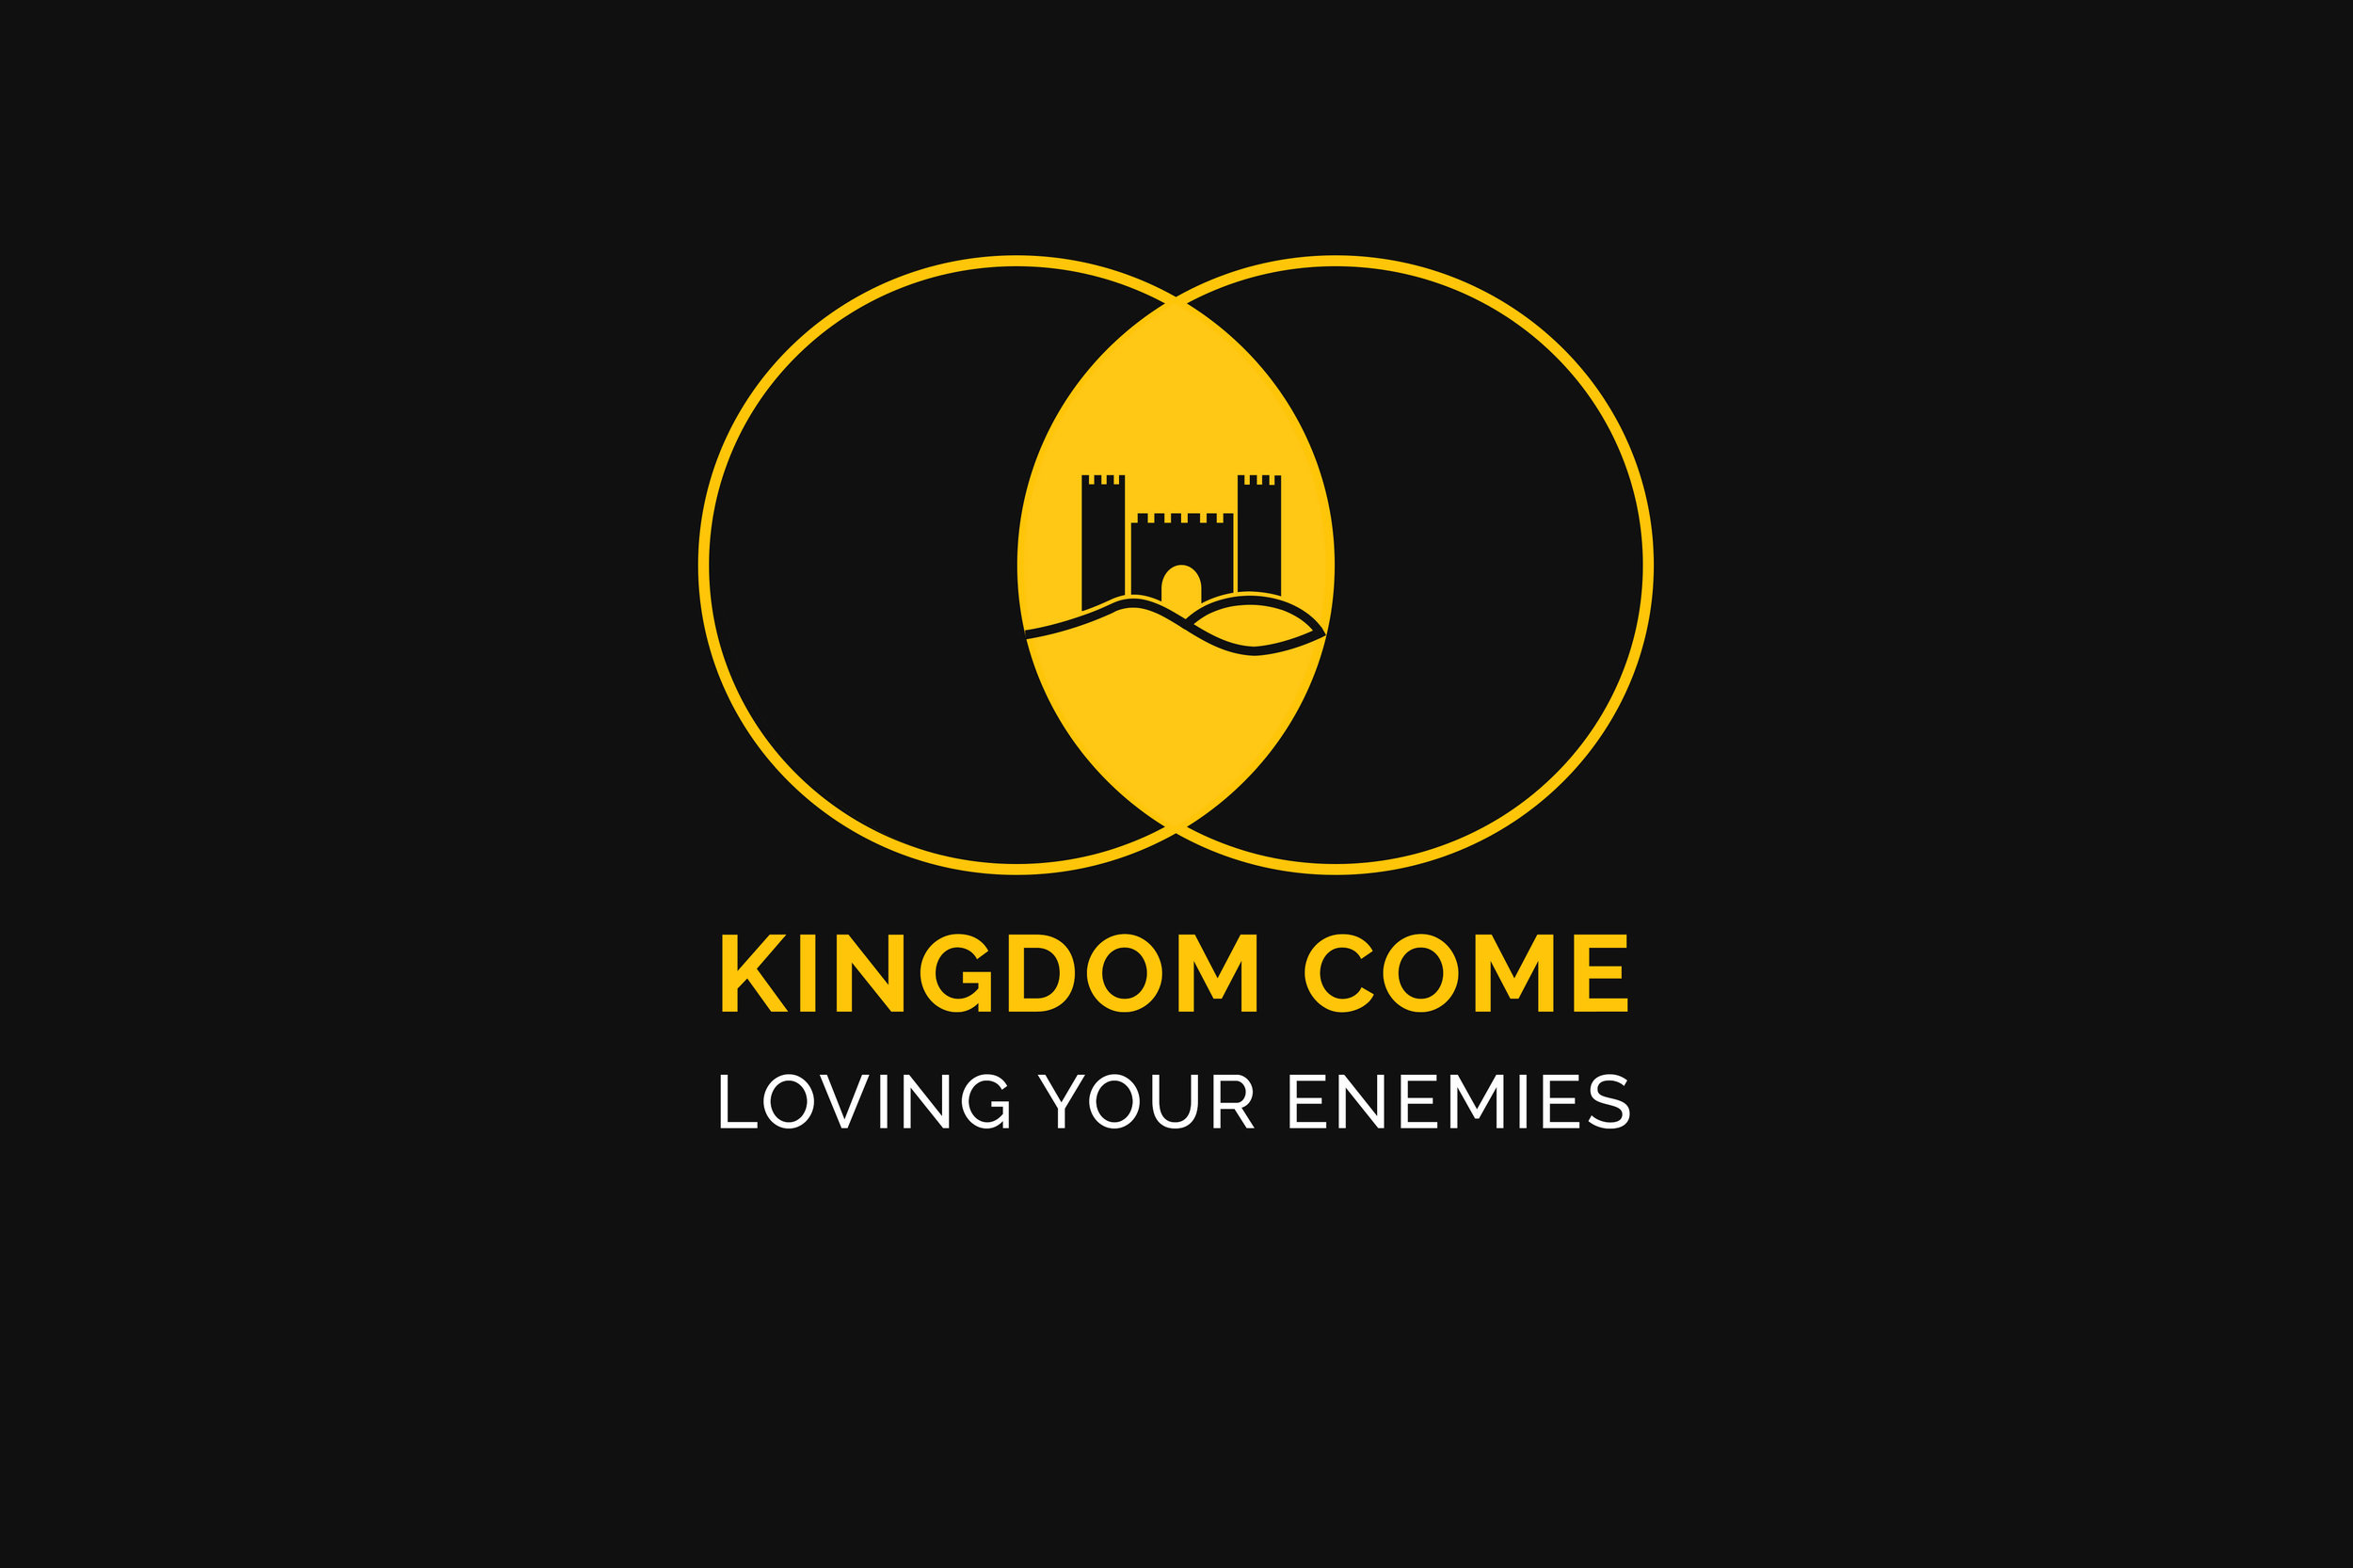 Kingdom-Come-Loving-your-enemies.jpg